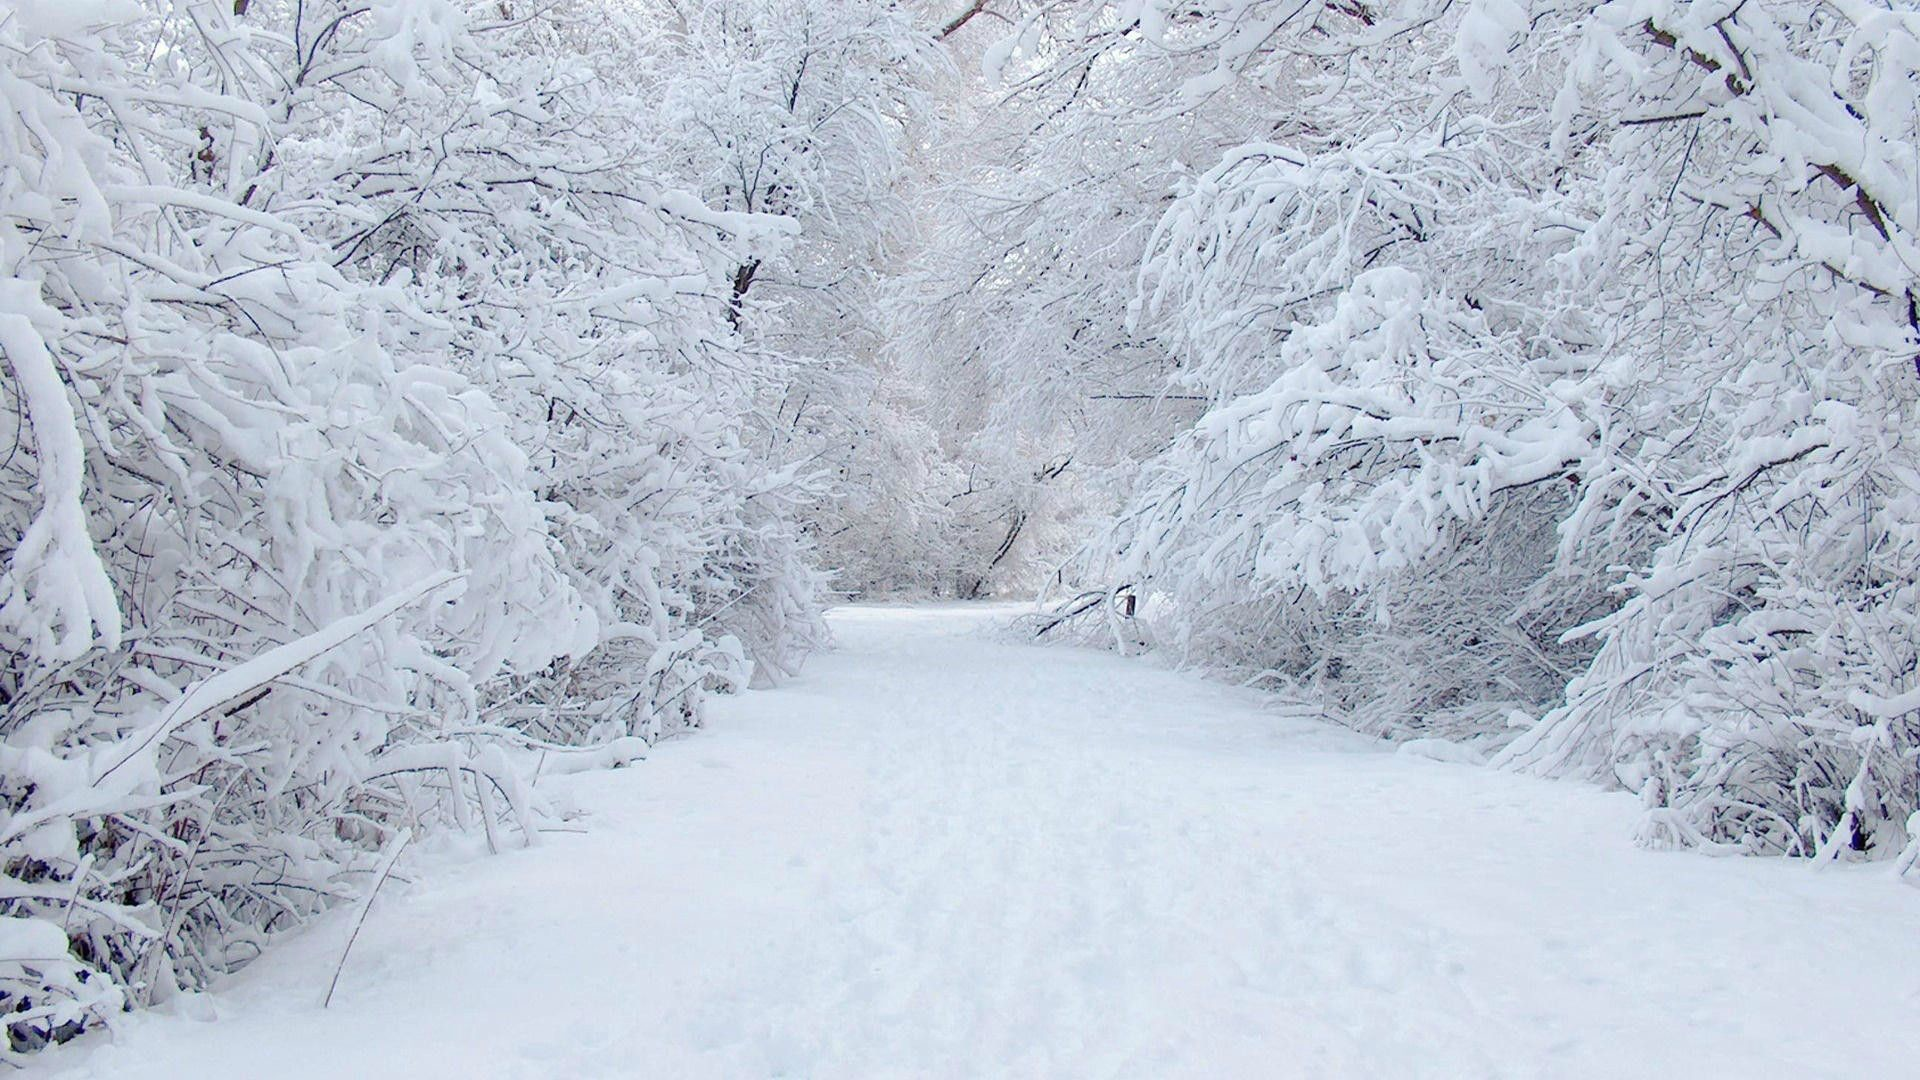 Snow HD Wallpapers Backgrounds Wallpaper 1920×1080 Pictures Of Snow  Wallpapers (25 Wallpapers)